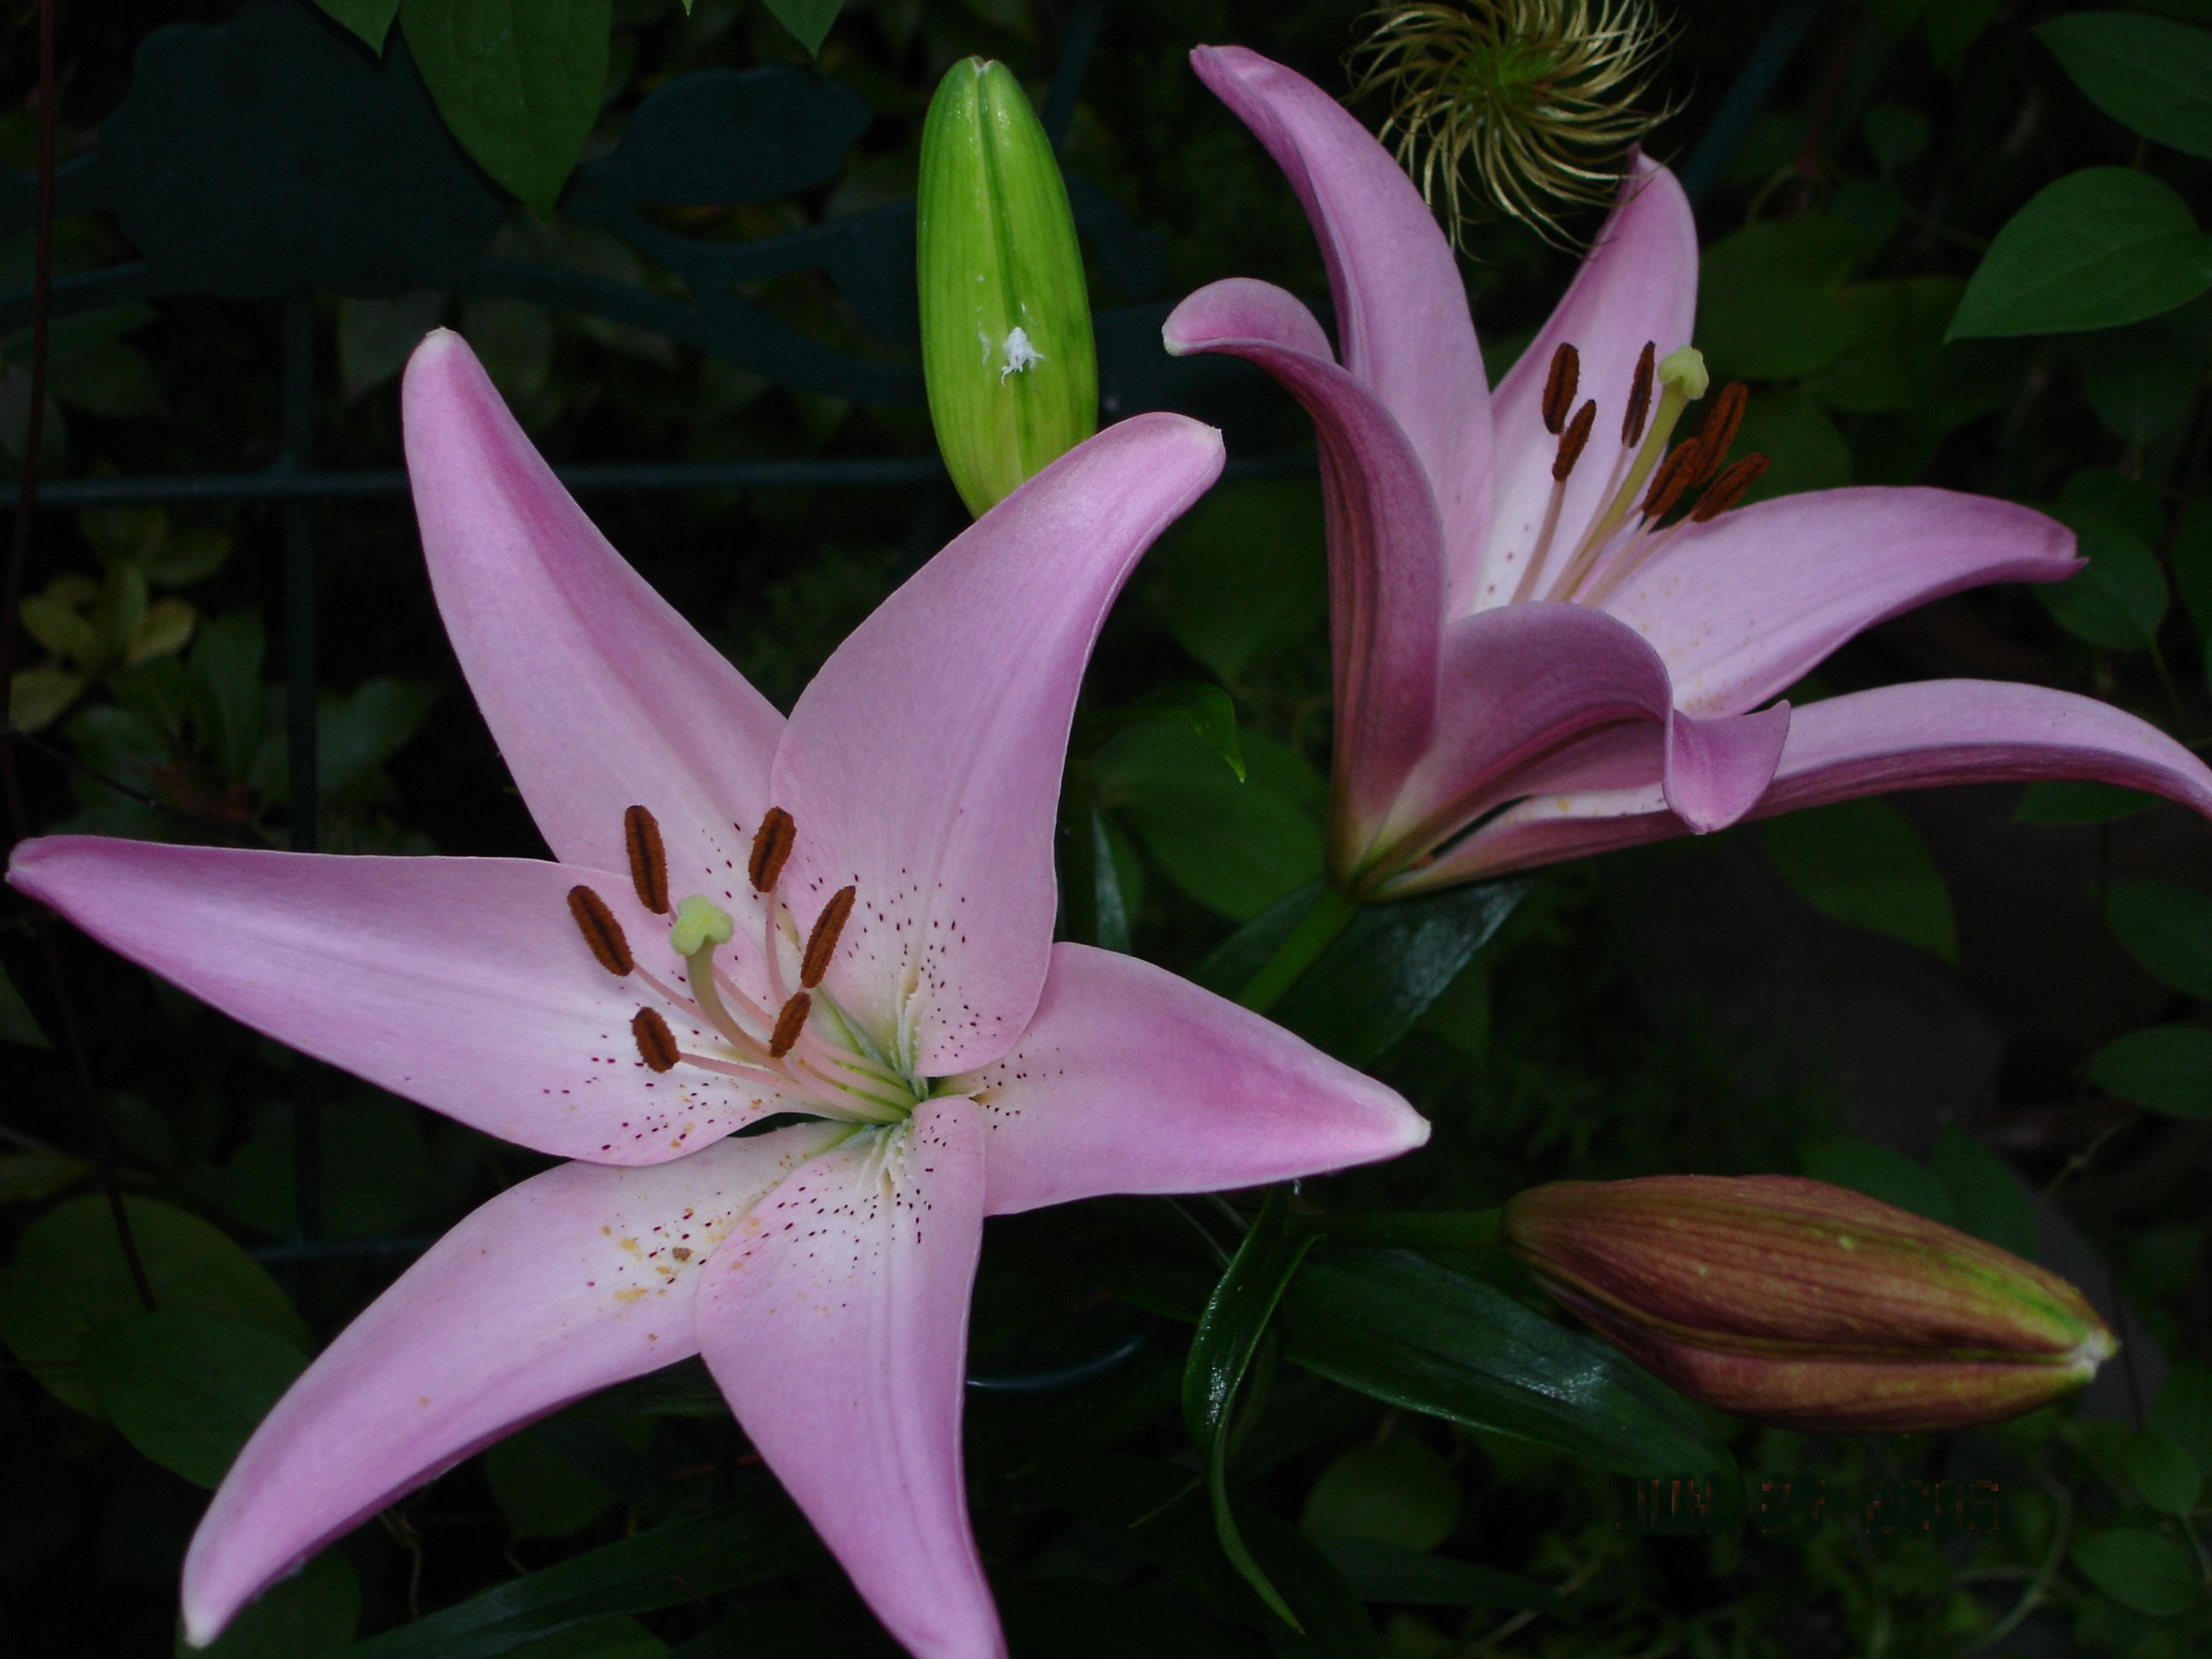 Purple lily susie d for the yardgarden pinterest purple lily purple lily susie d izmirmasajfo